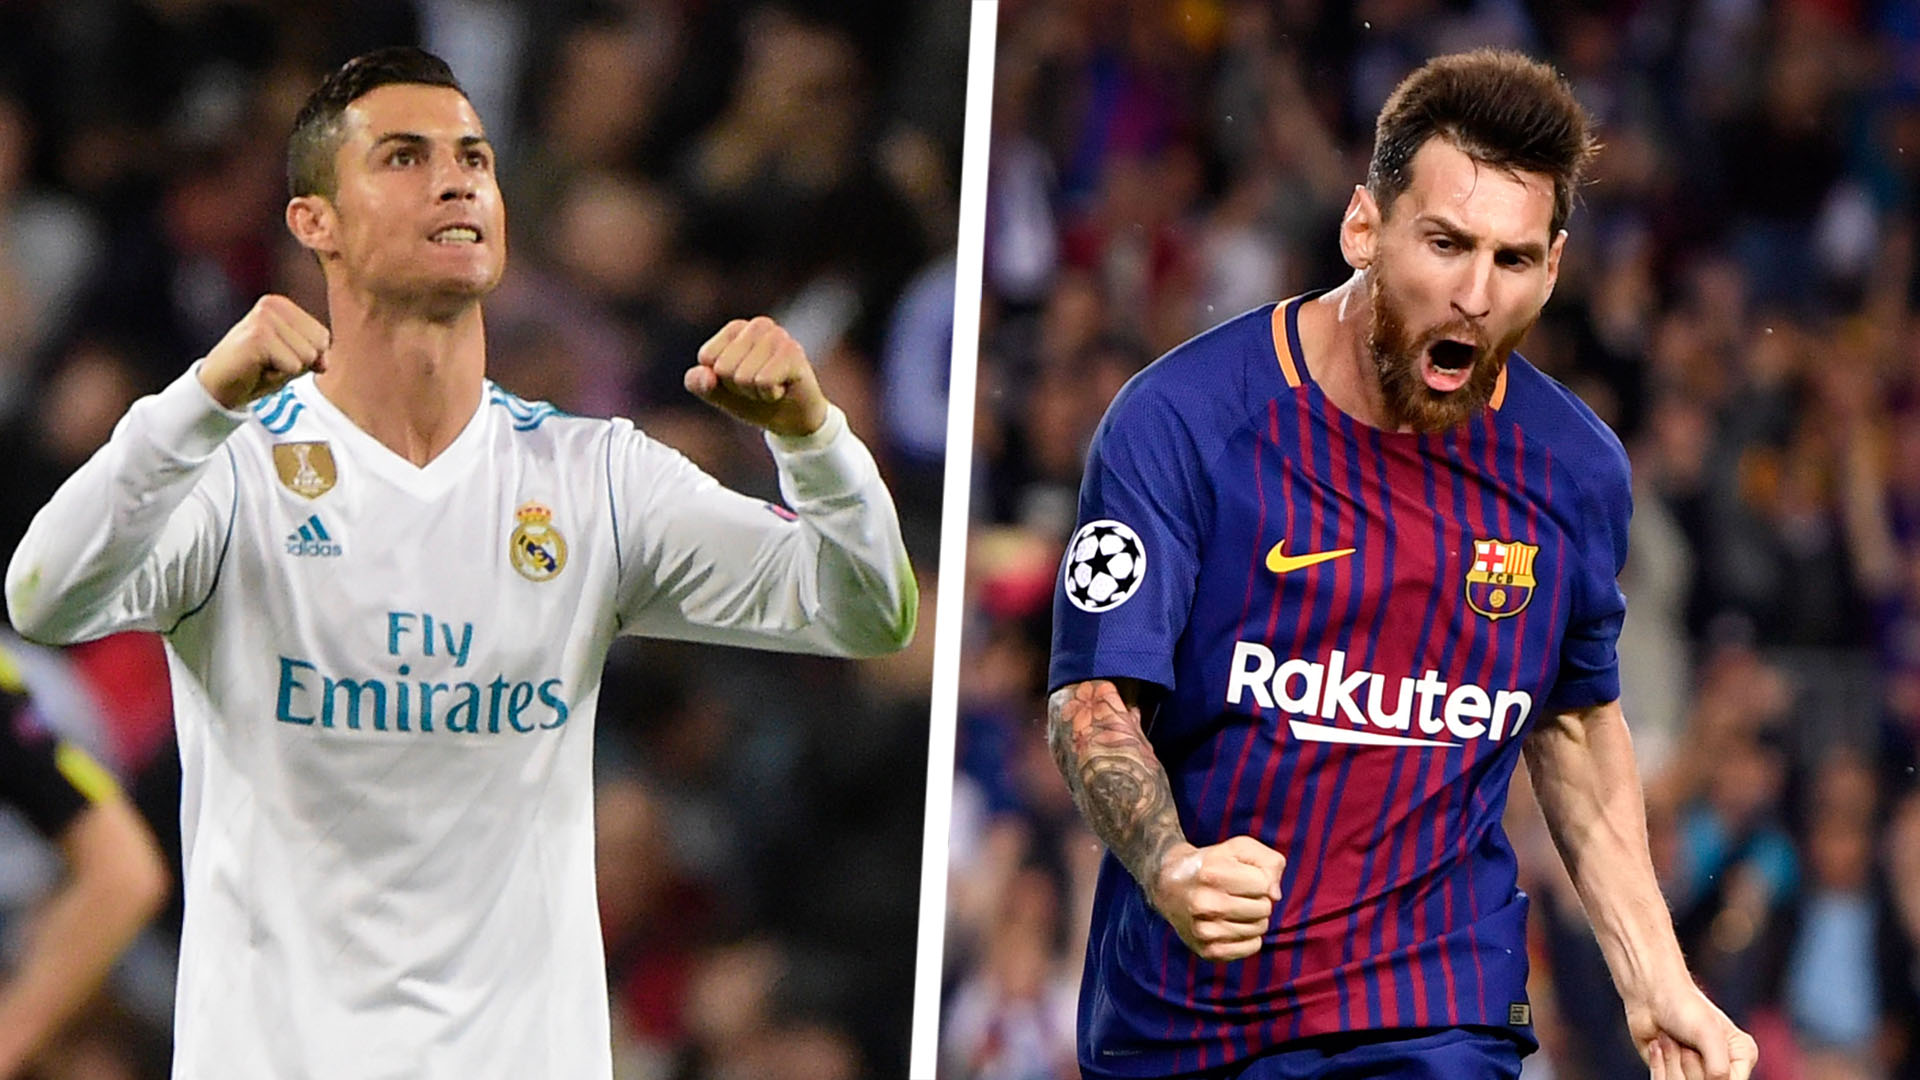 Cristiano-ronaldo-real-madrid-lionel-messi-barcelona_ymyrgnajley1pxwhv1d3gt7t